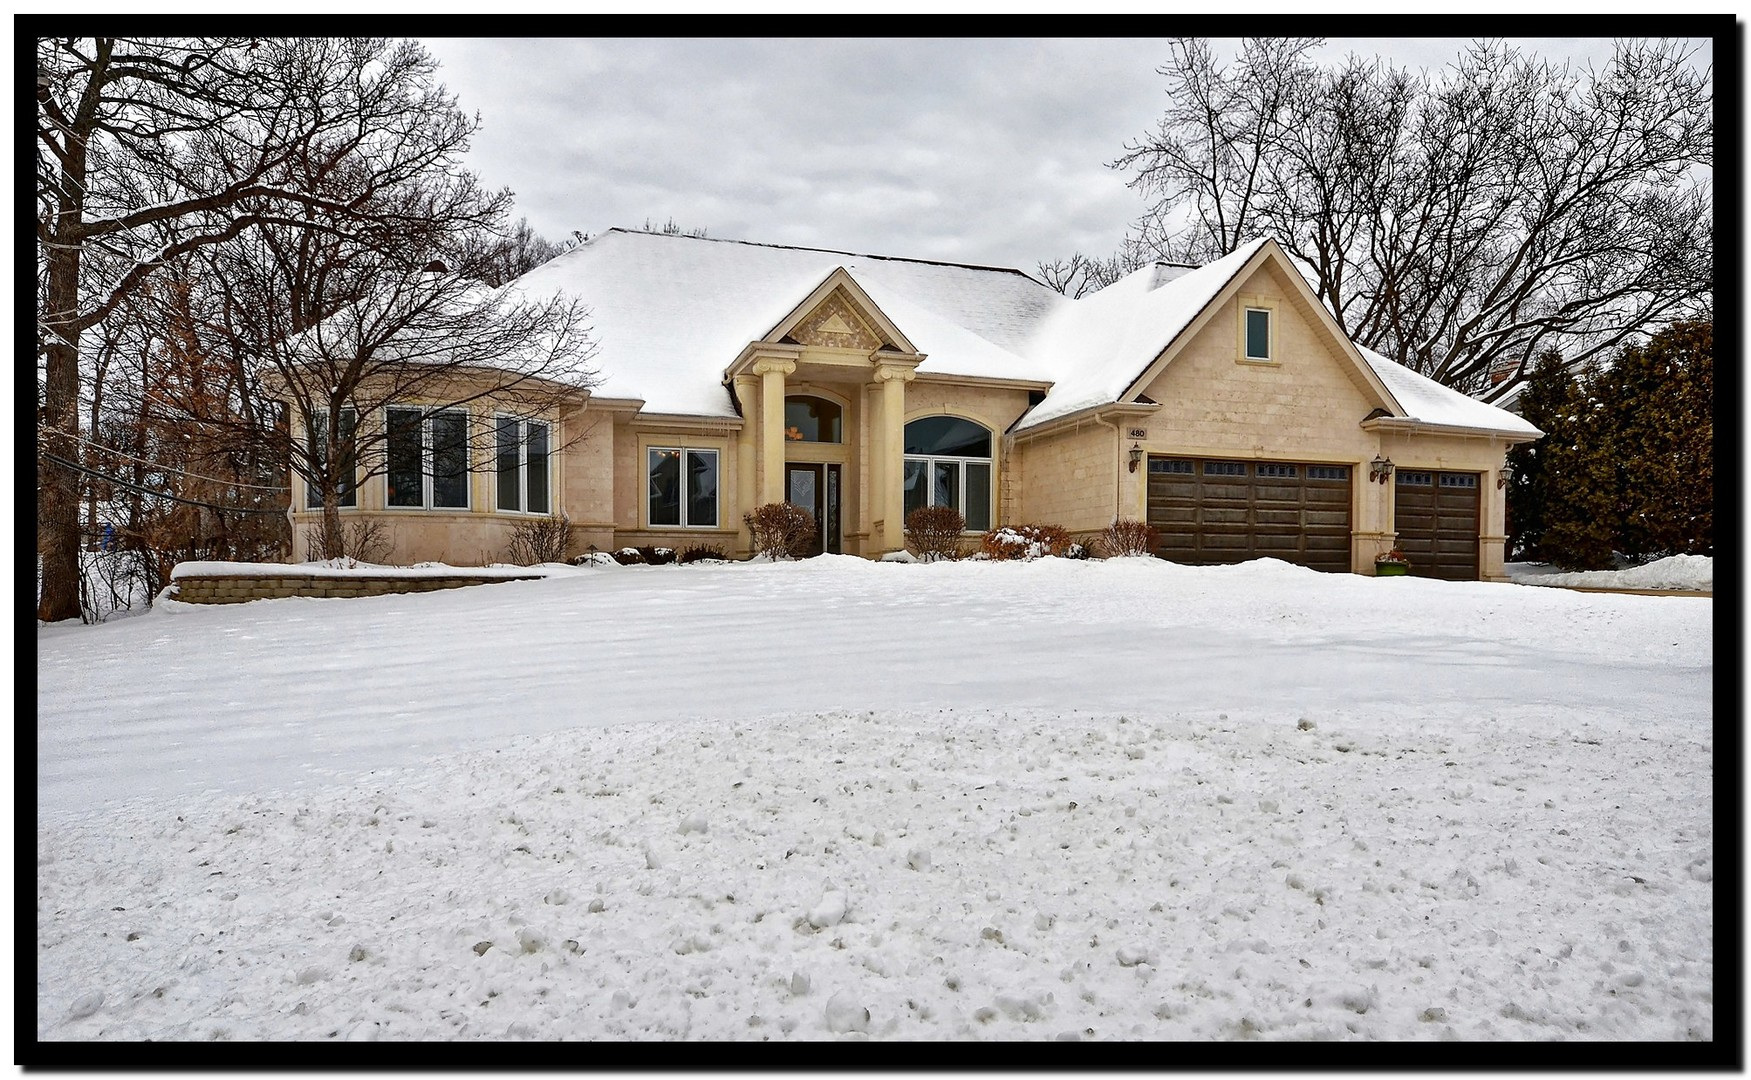 Beautiful Homes For Sale Wood Dale Il Festooning - Home Decorating ...